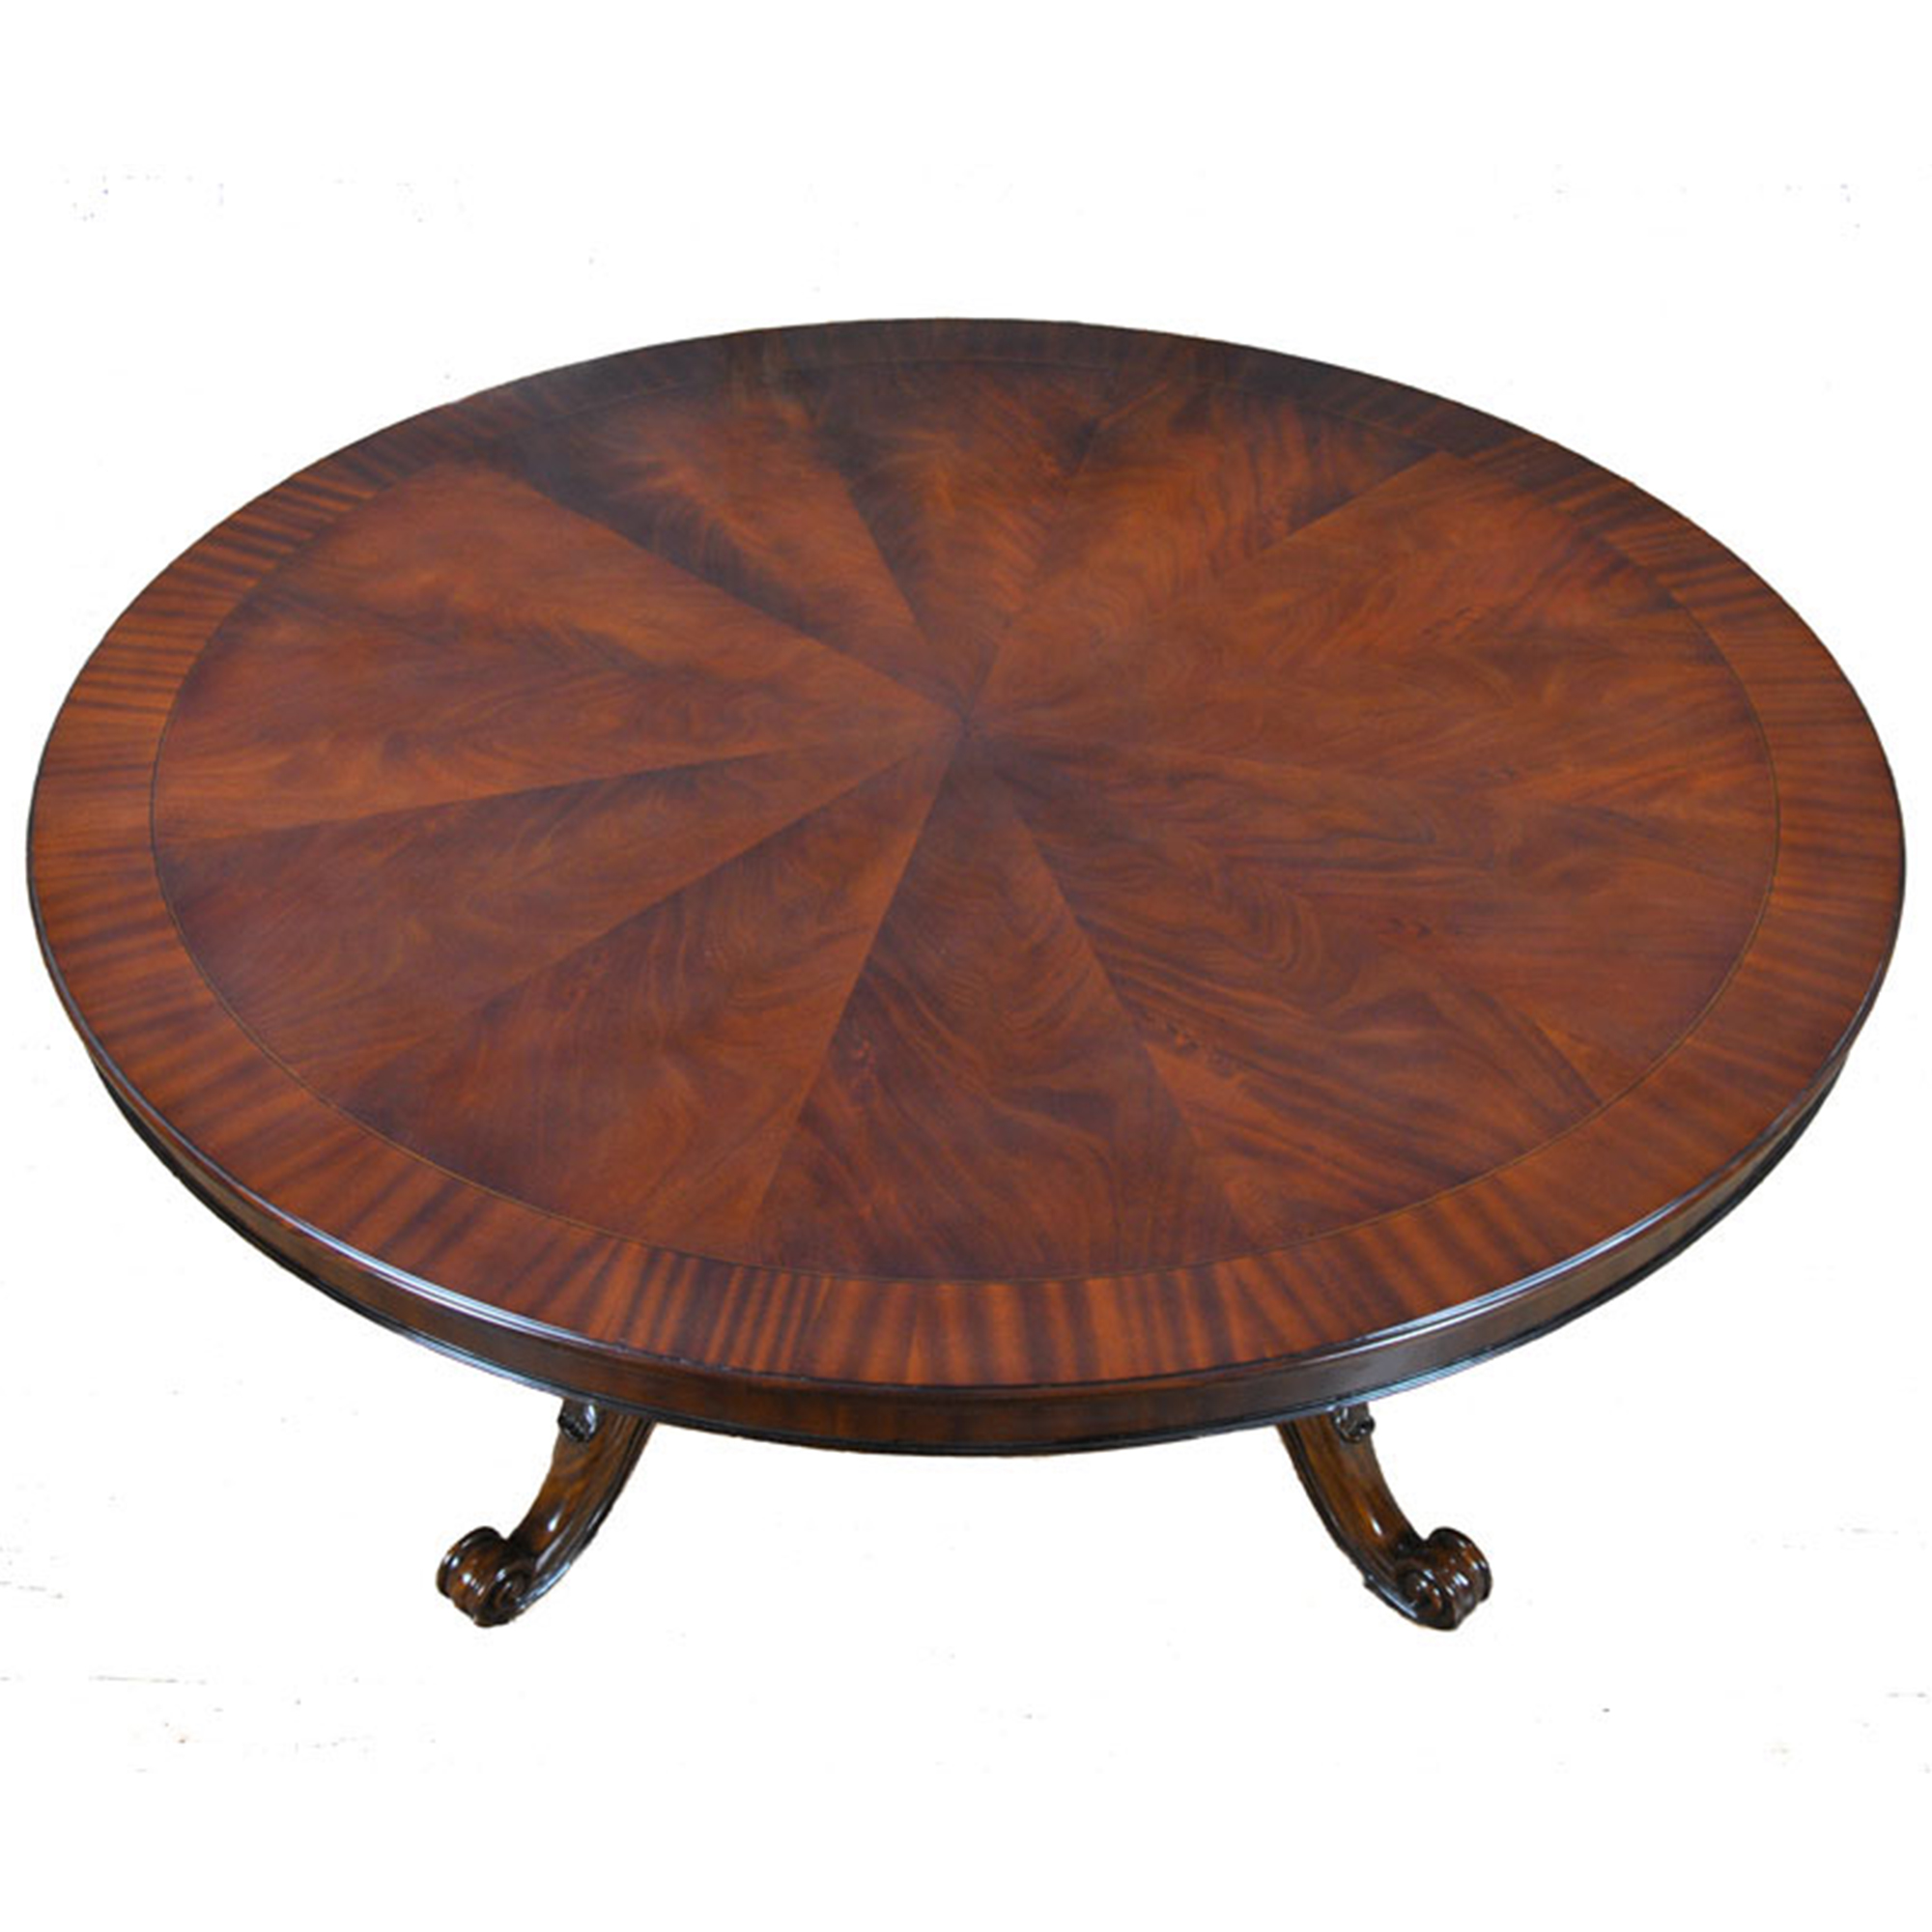 72 inch Round Table Niagara Furniture round mahogany table : NDRT040 1 from niagarafurniture.com size 2000 x 2000 jpeg 870kB